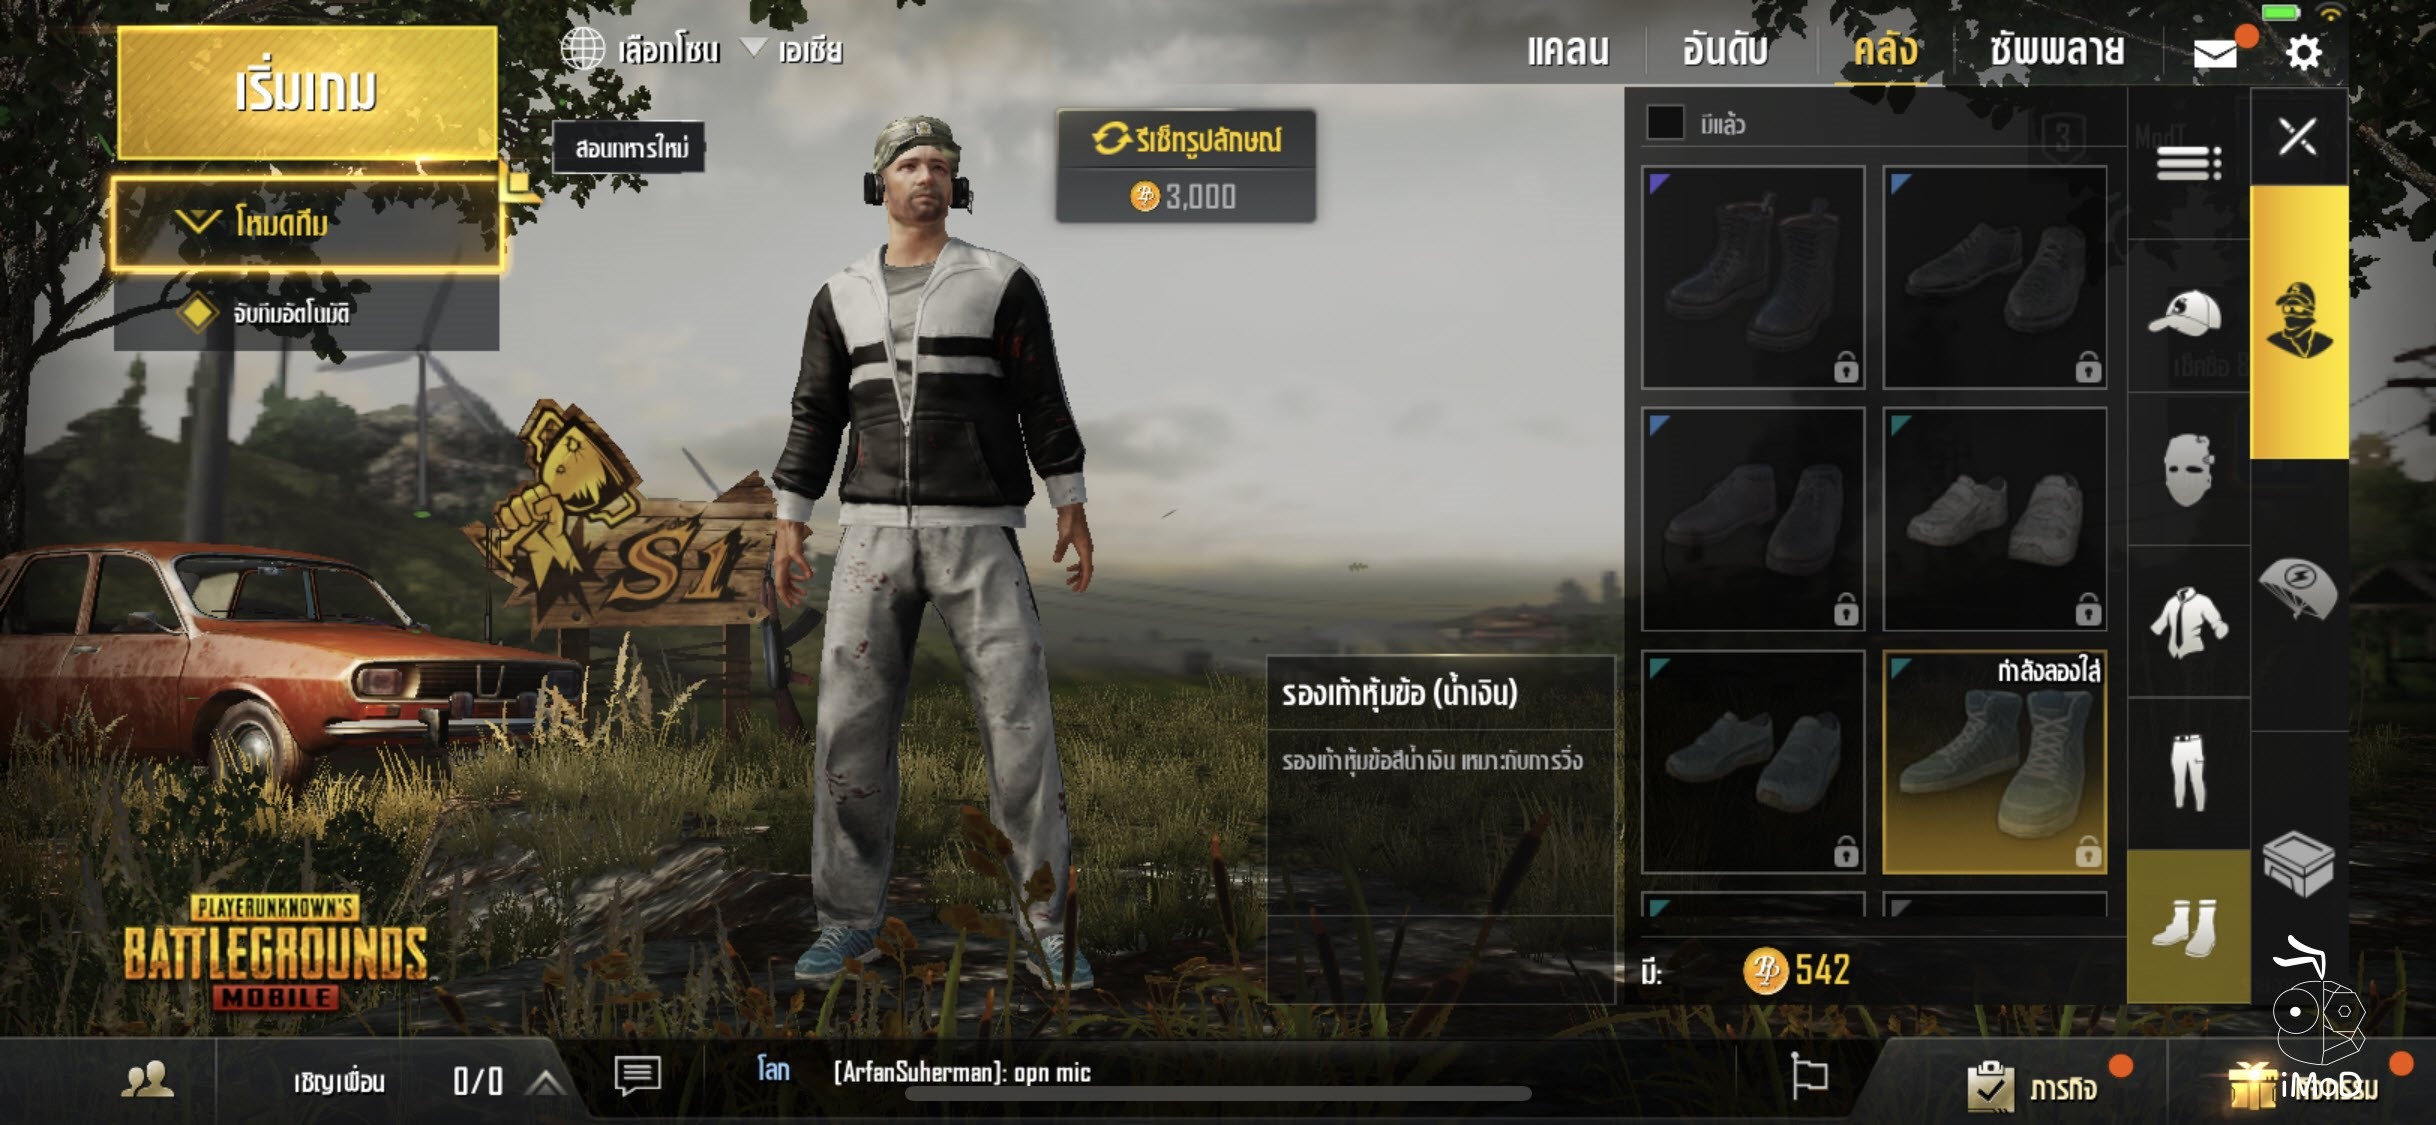 PUBG Mobile hack how to get unlimited (gold/gold/diamonds)